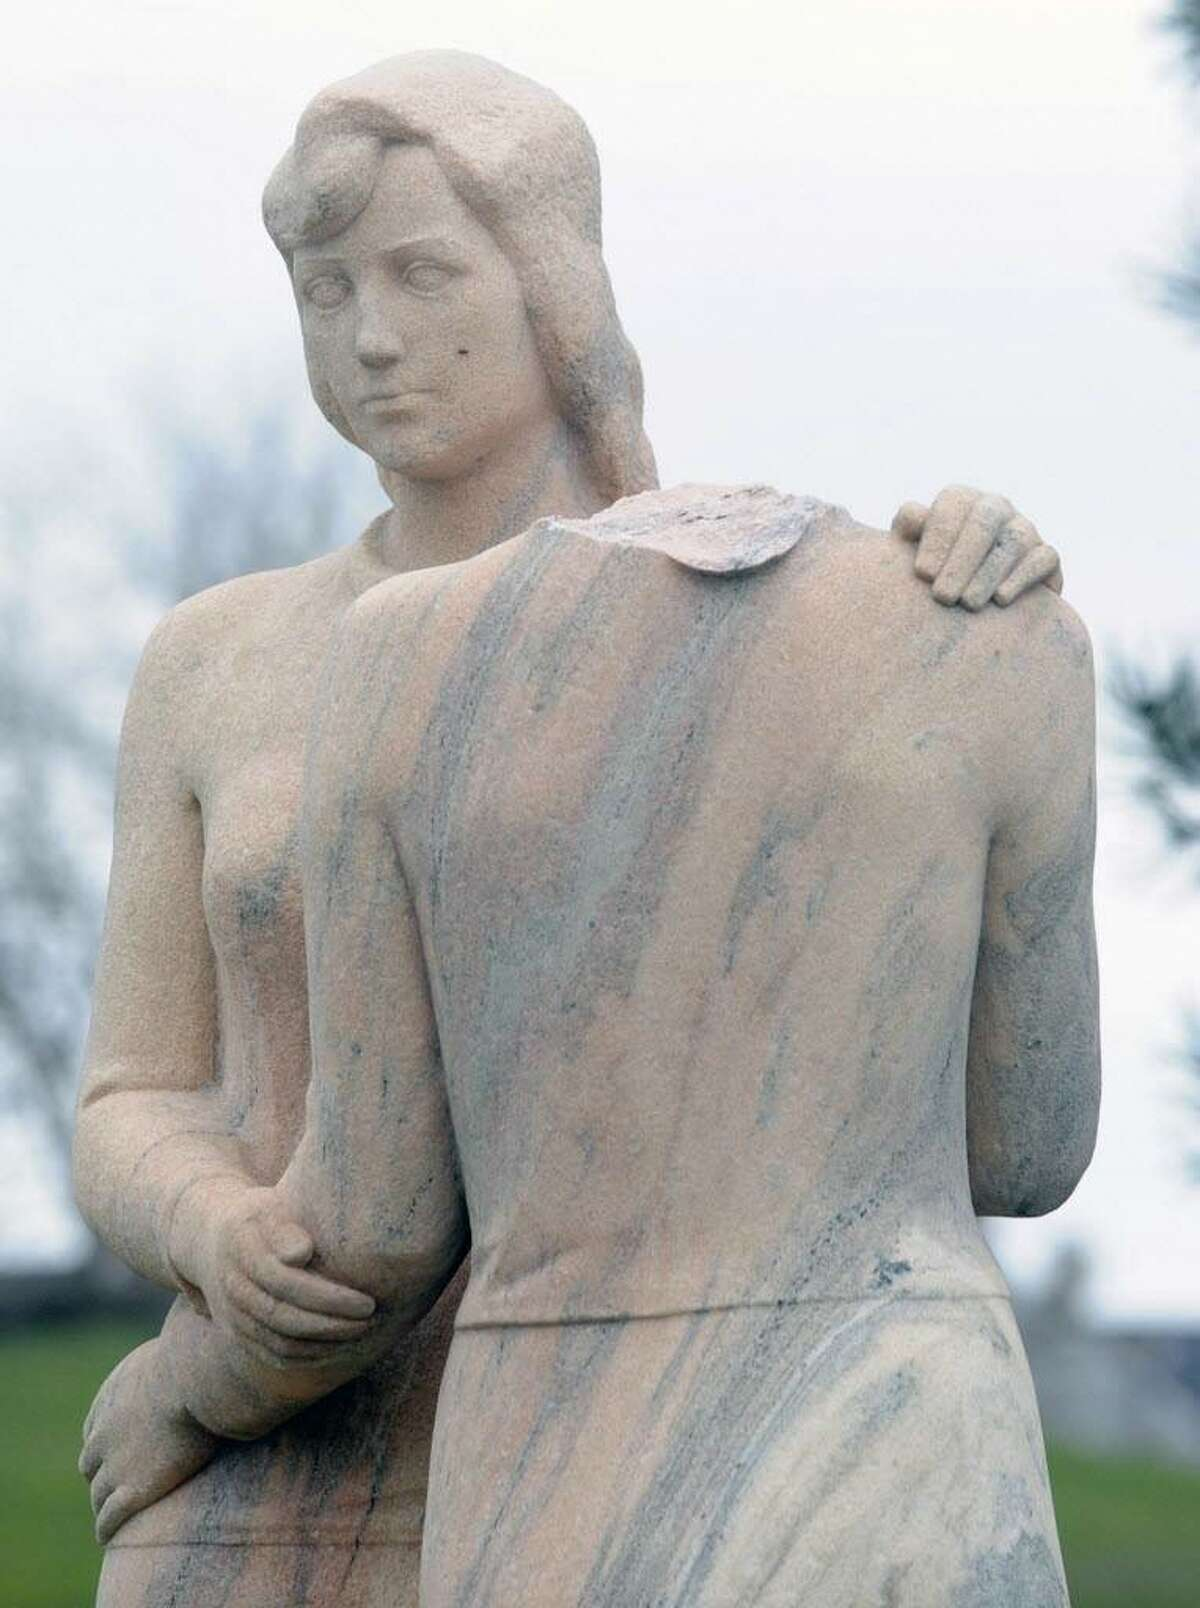 """""""Neighbors,"""" a depression era statue by Henry Kreis, stands in Czecik Marina Park on Shippan Avenue March 28, 2010. The statue, which depicts two women embracing, was damaged when the head of one of the women was cut off and taken. The head of the statue has been recovered."""